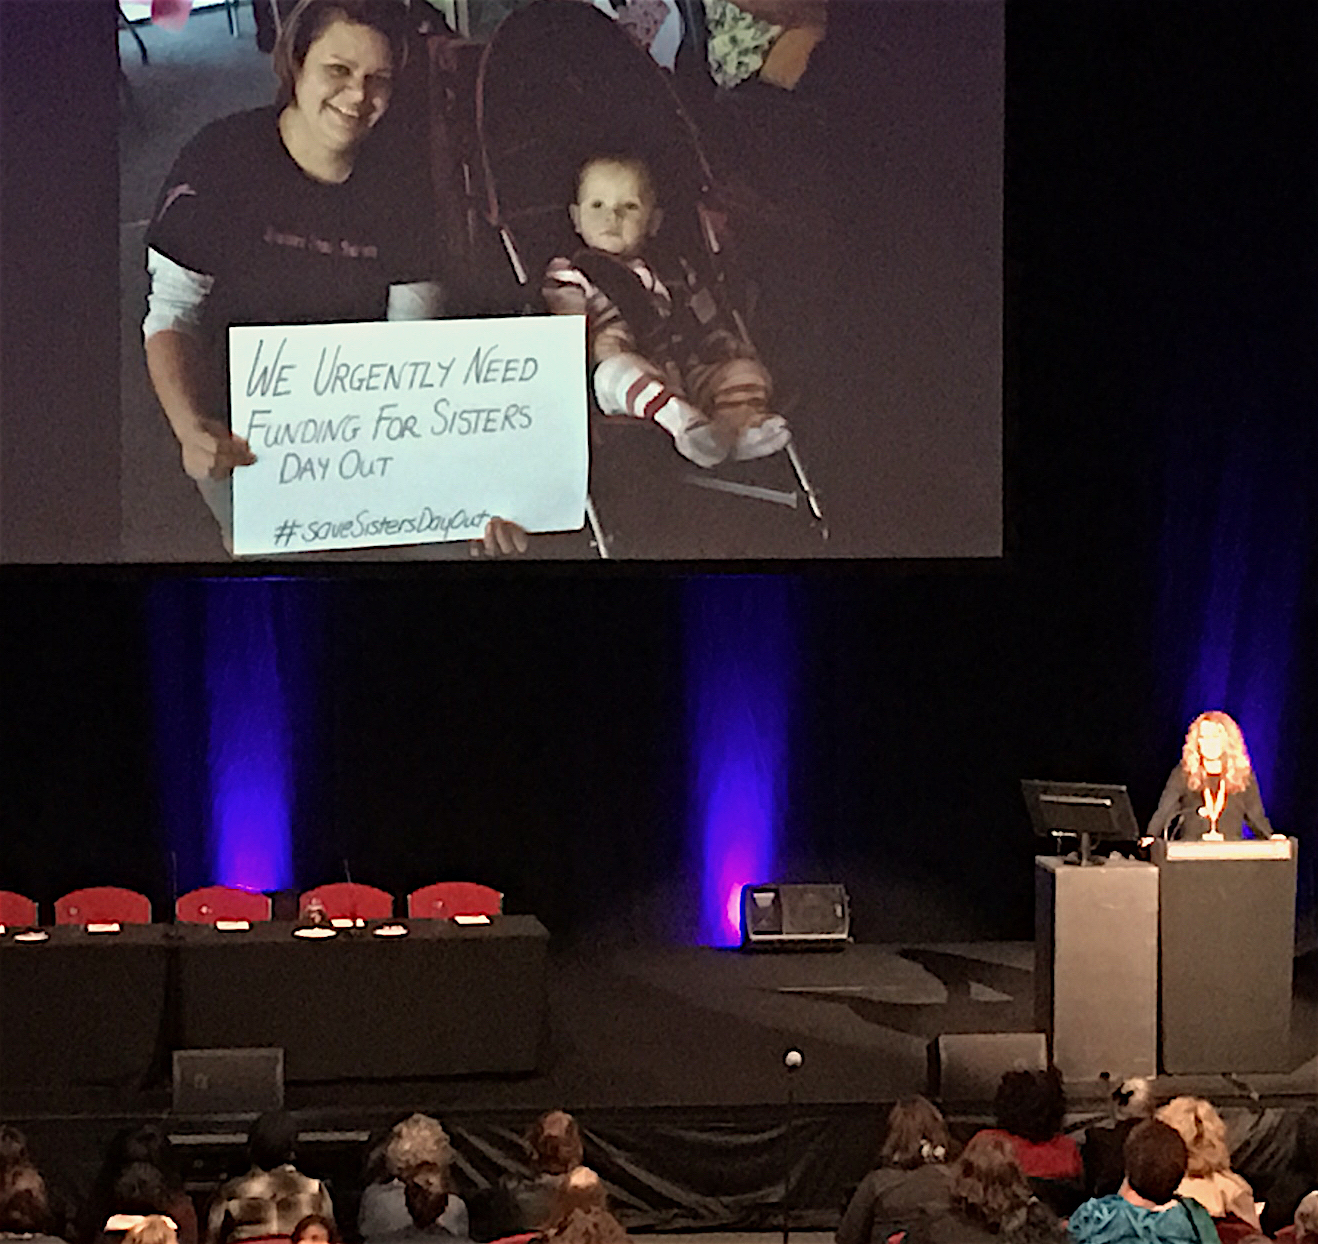 CEO of the Aboriginal Family Violence Prevention and Legal Service, Antoinette Braybrook, giving her keynote address.